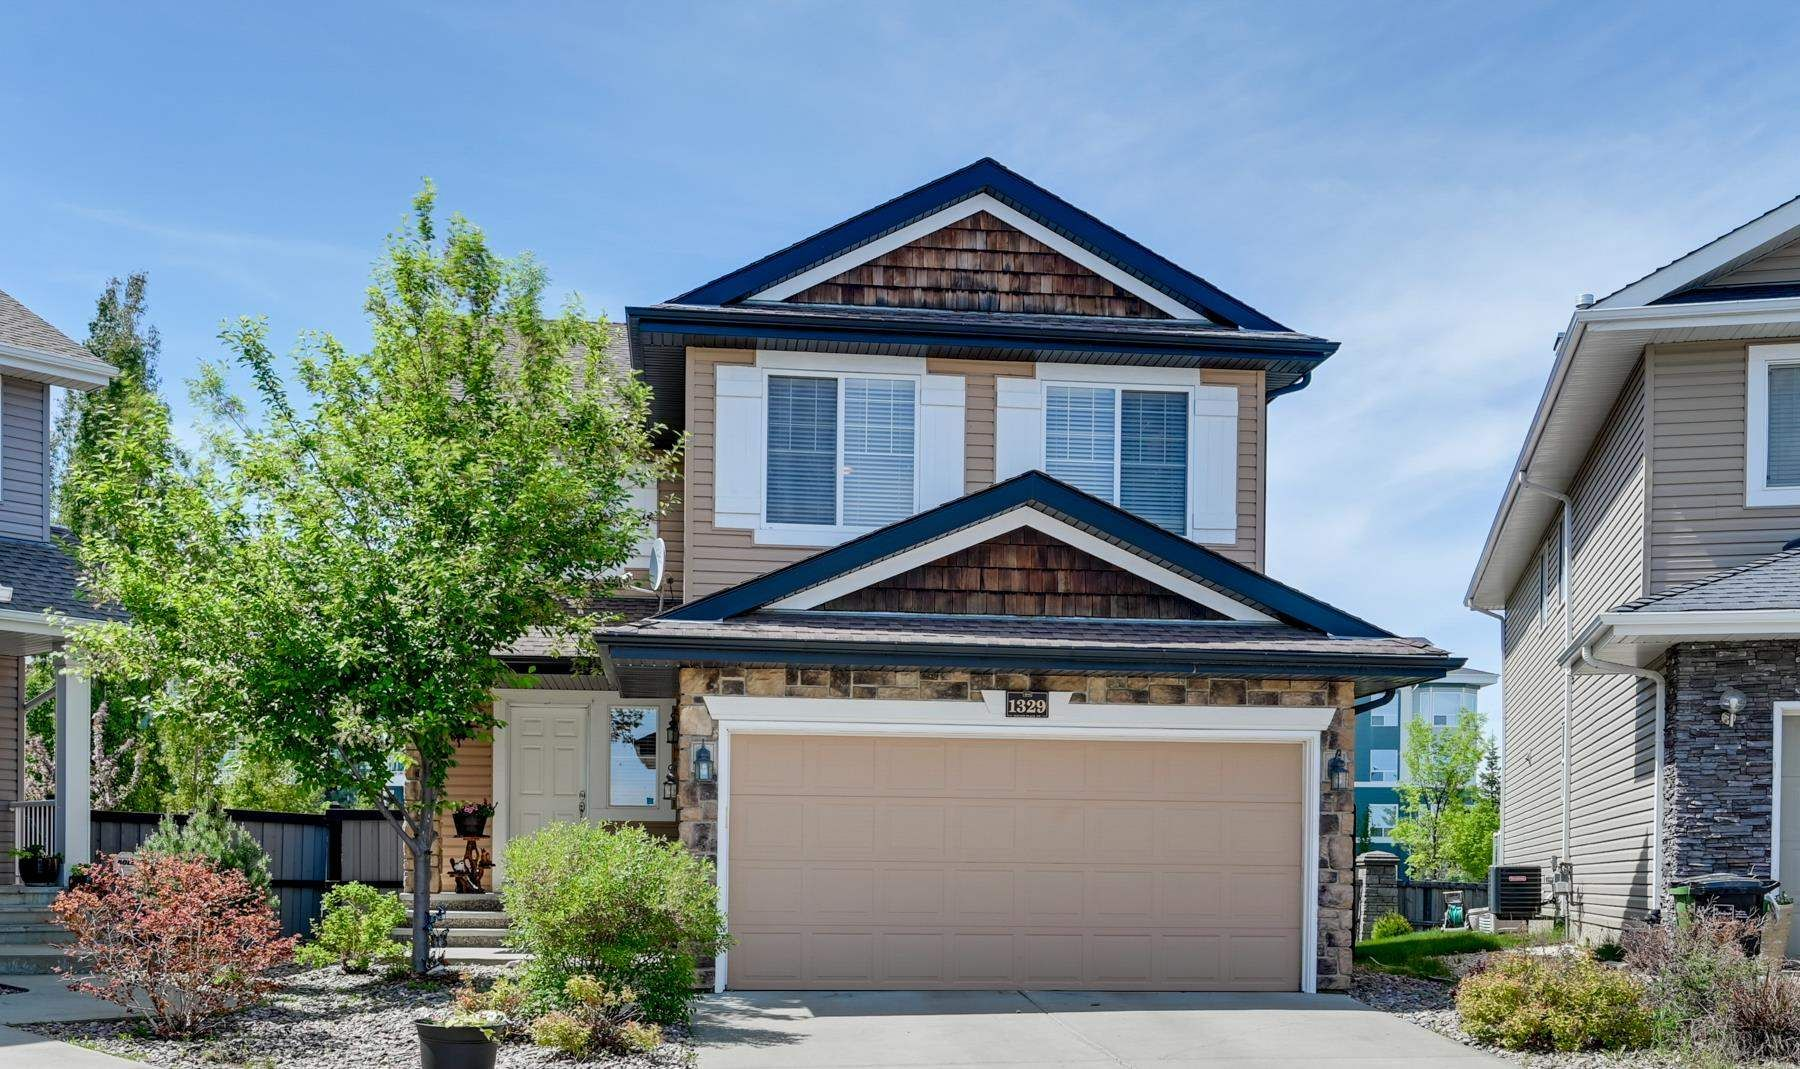 Main Photo: 1329 MALONE Place in Edmonton: Zone 14 House for sale : MLS®# E4247611